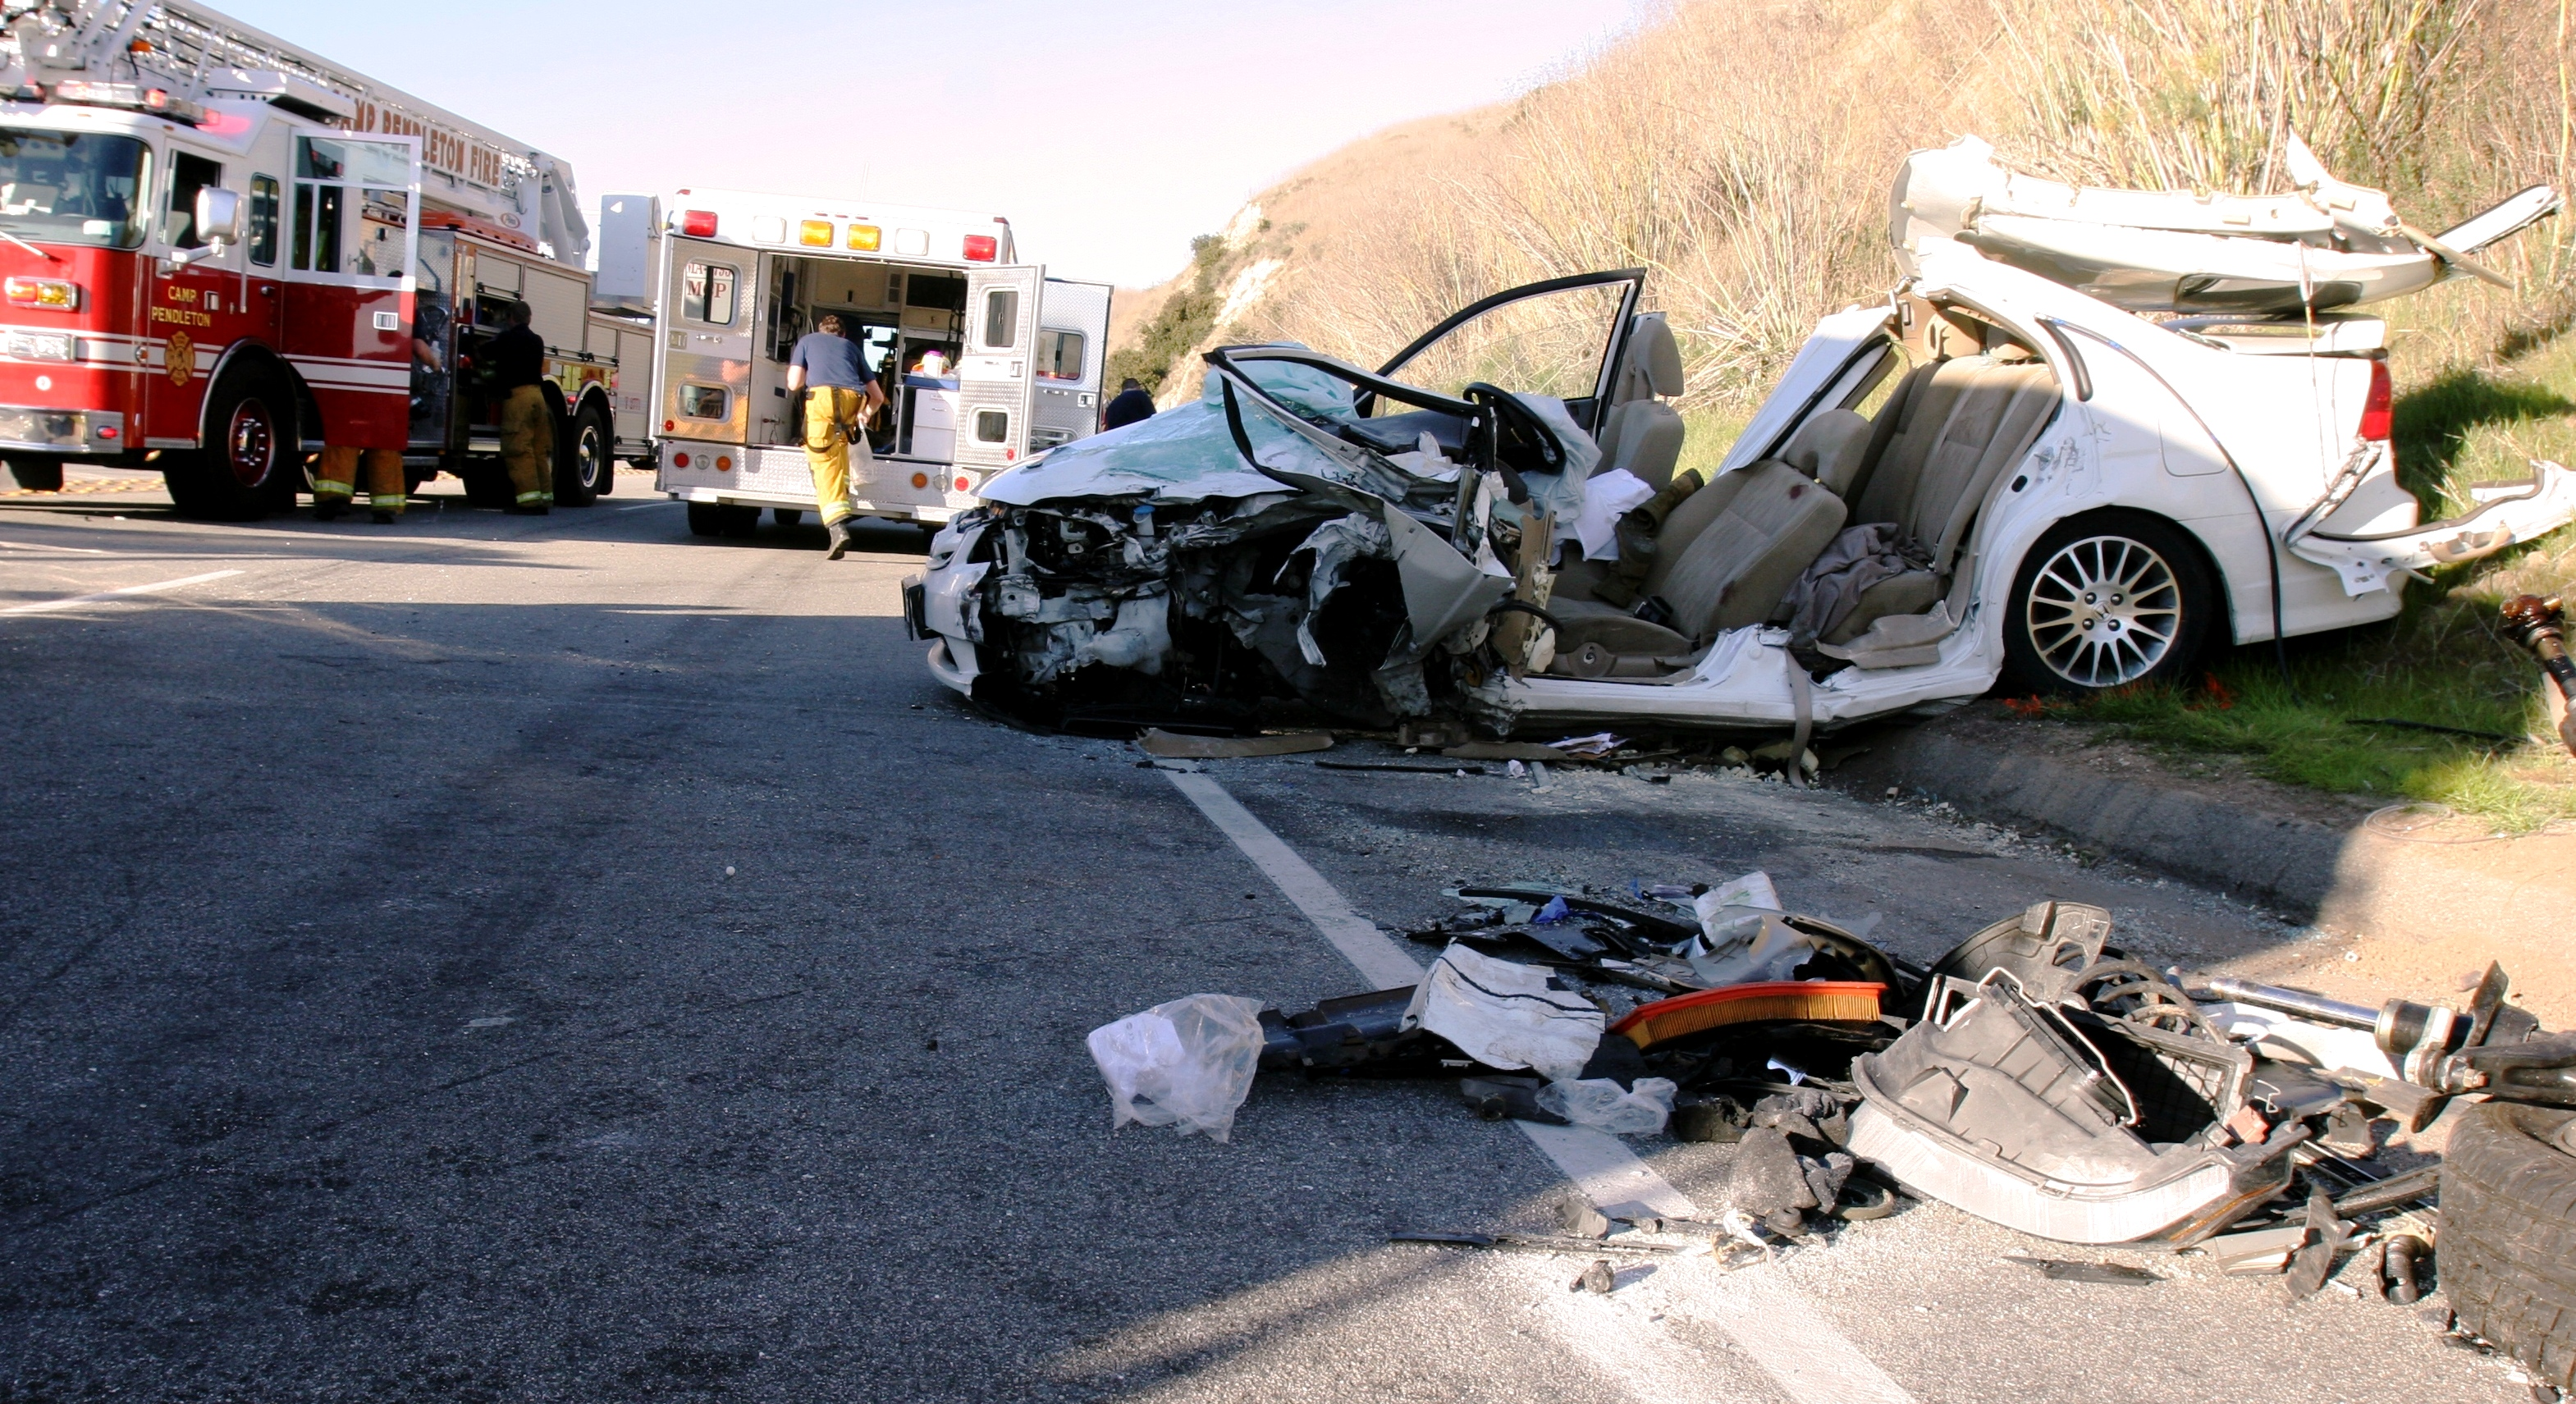 File:Two-car collision in the USA.jpg - Wikimedia Commons